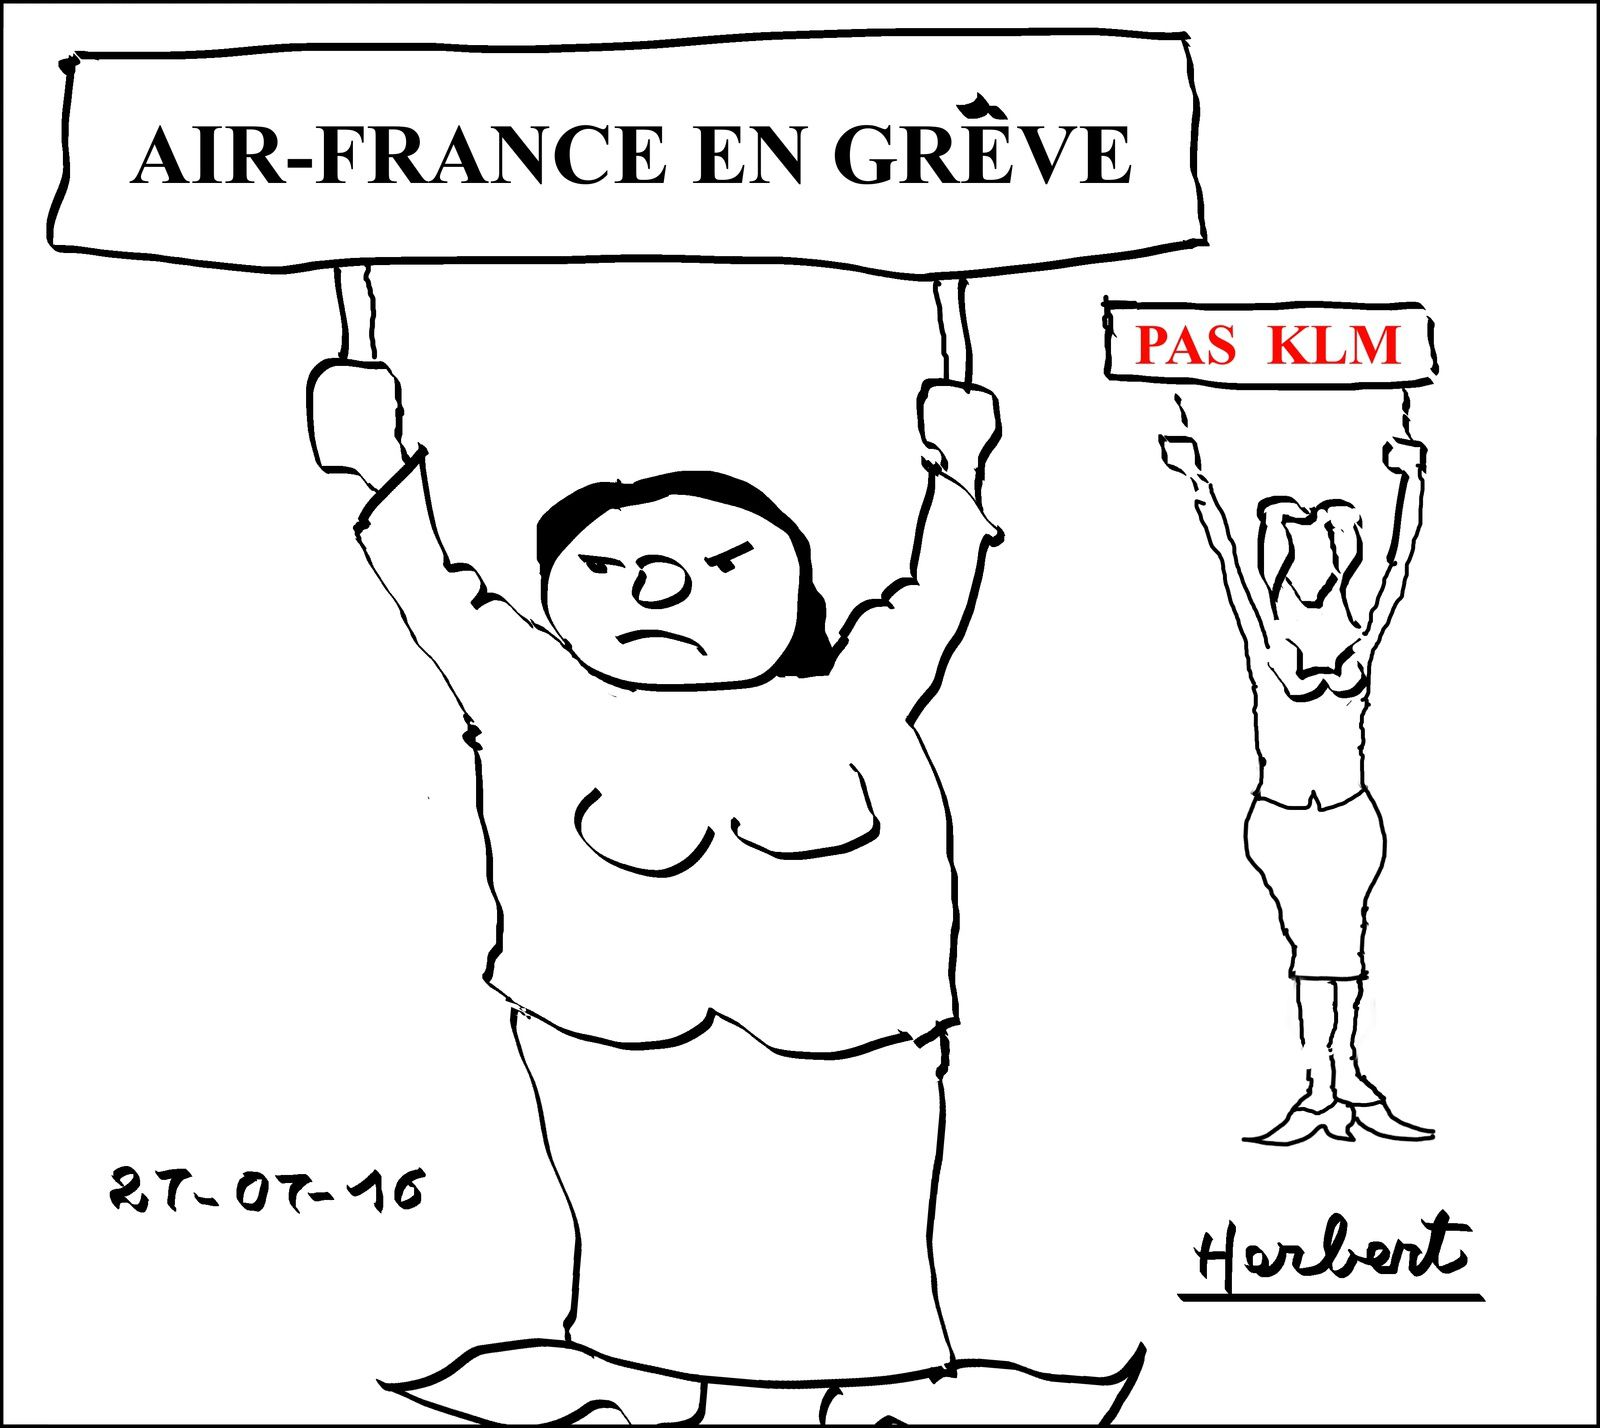 Grêve rituelle à Air-France (groupe AF-KLM)